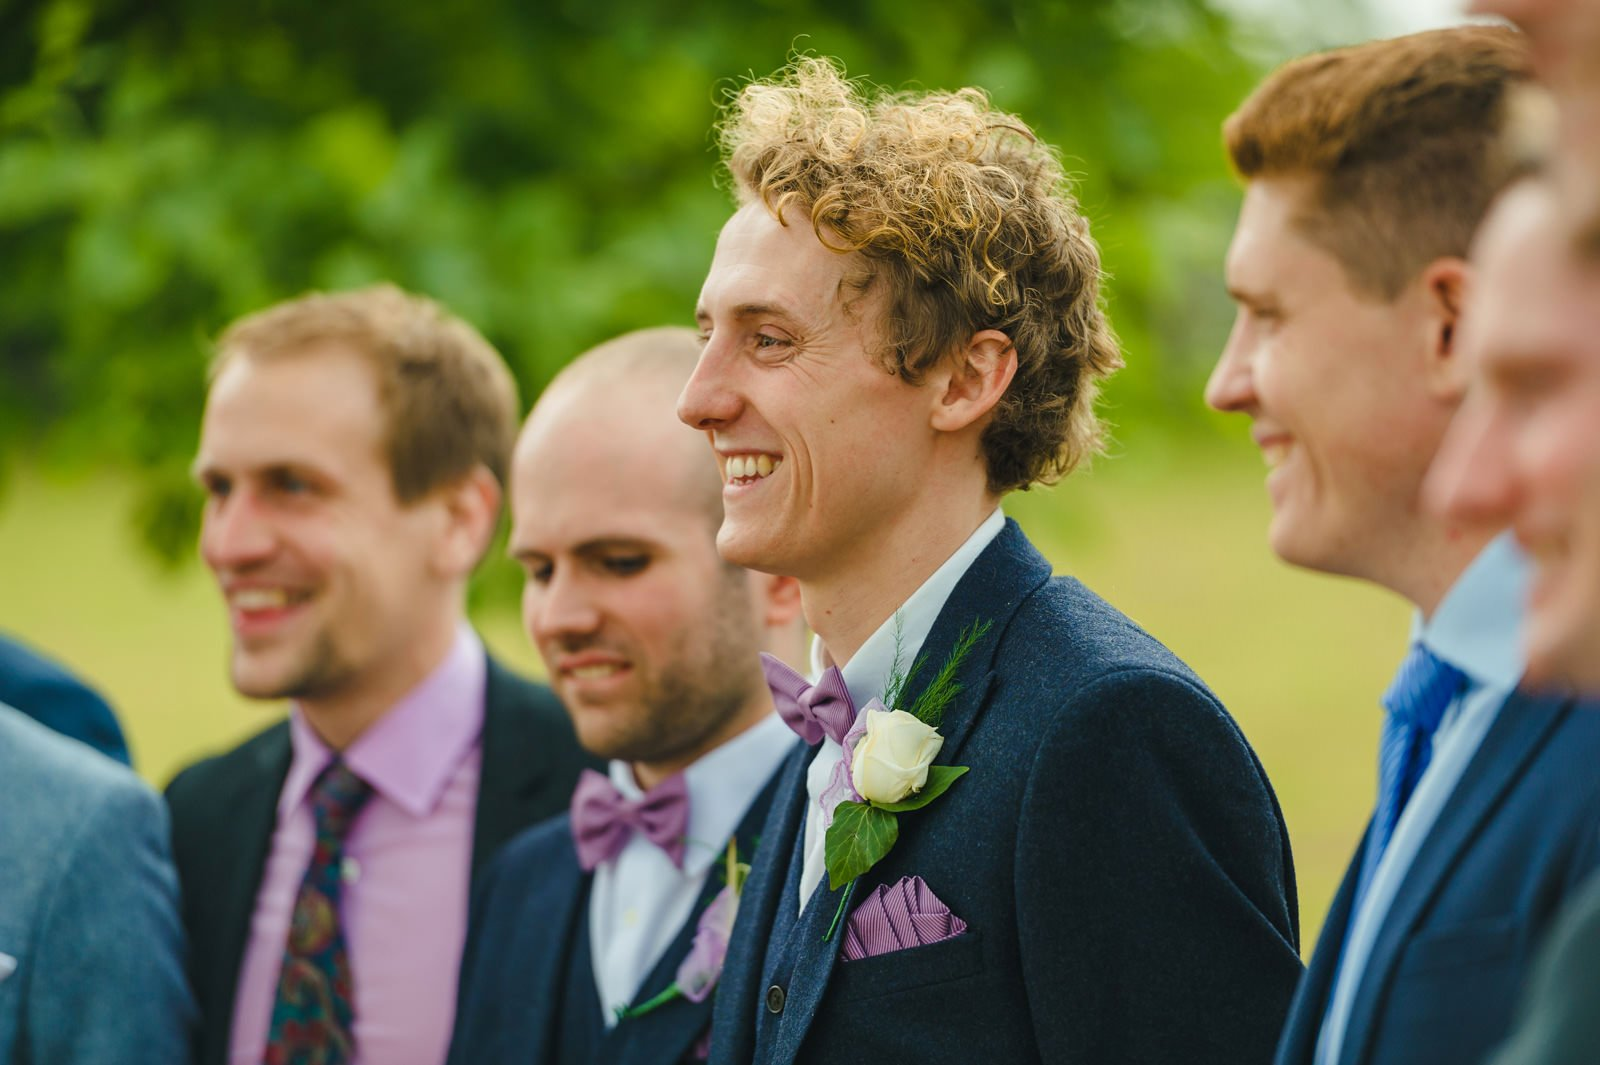 Millers Of Netley wedding, Dorrington, Shrewsbury | Emma + Ben 60